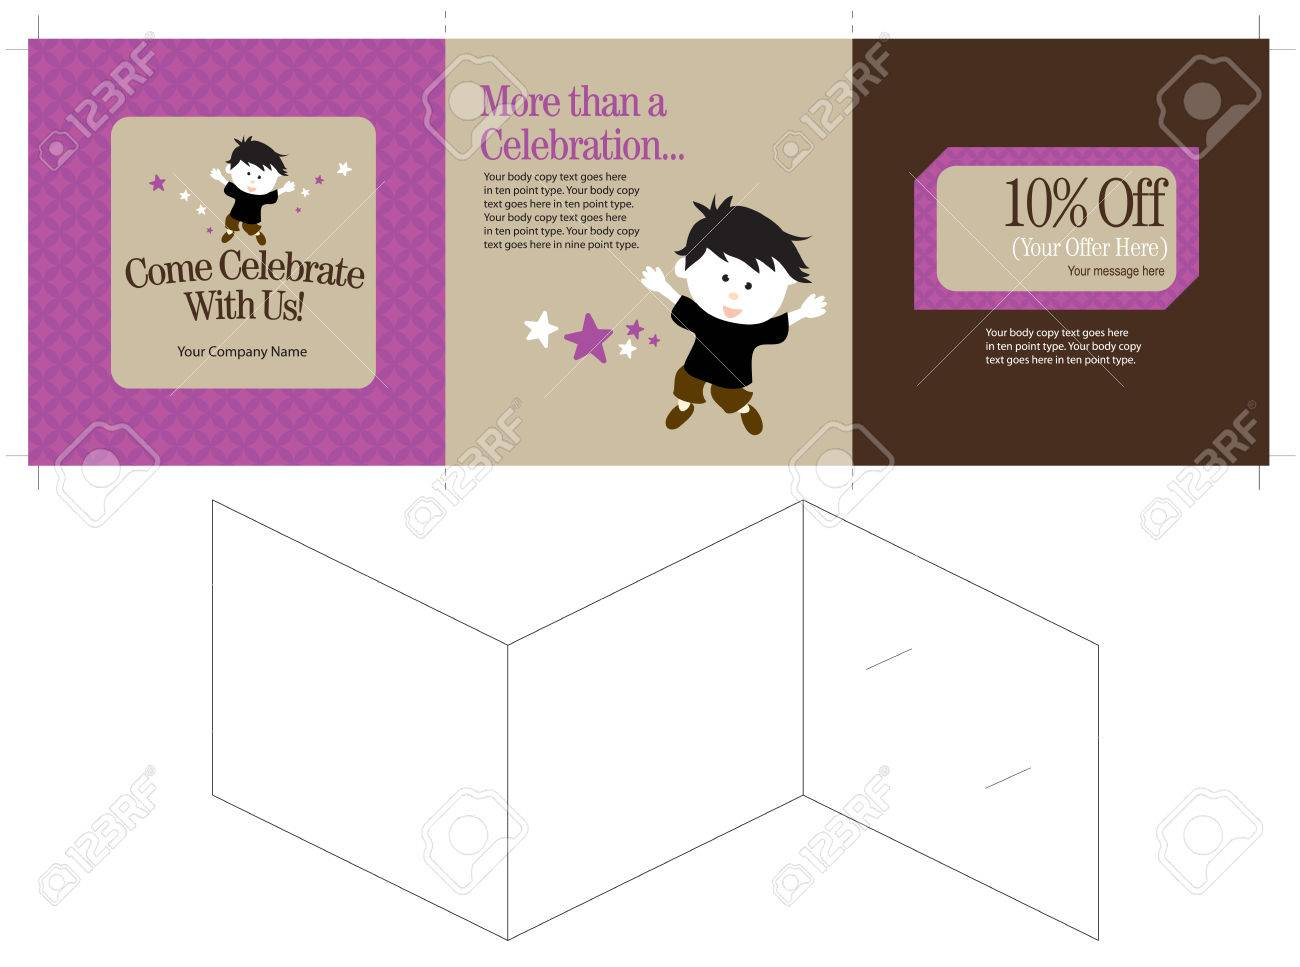 15x5 three panel brochure template folds to 5x5 includes crops